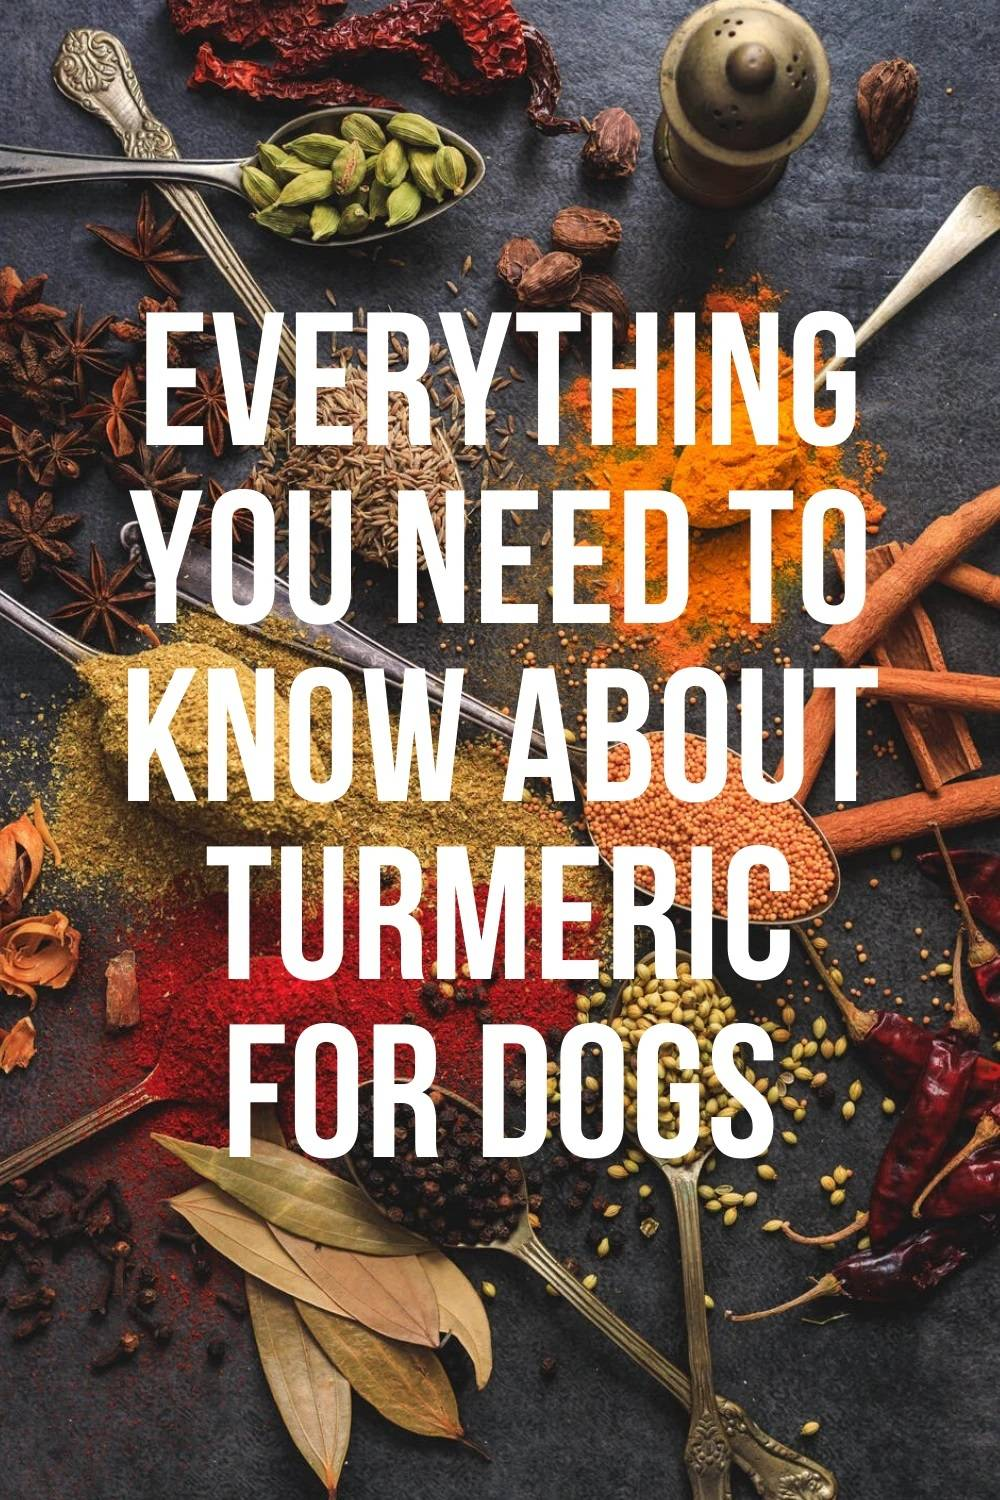 Everything you need to know about tumeric for dogs